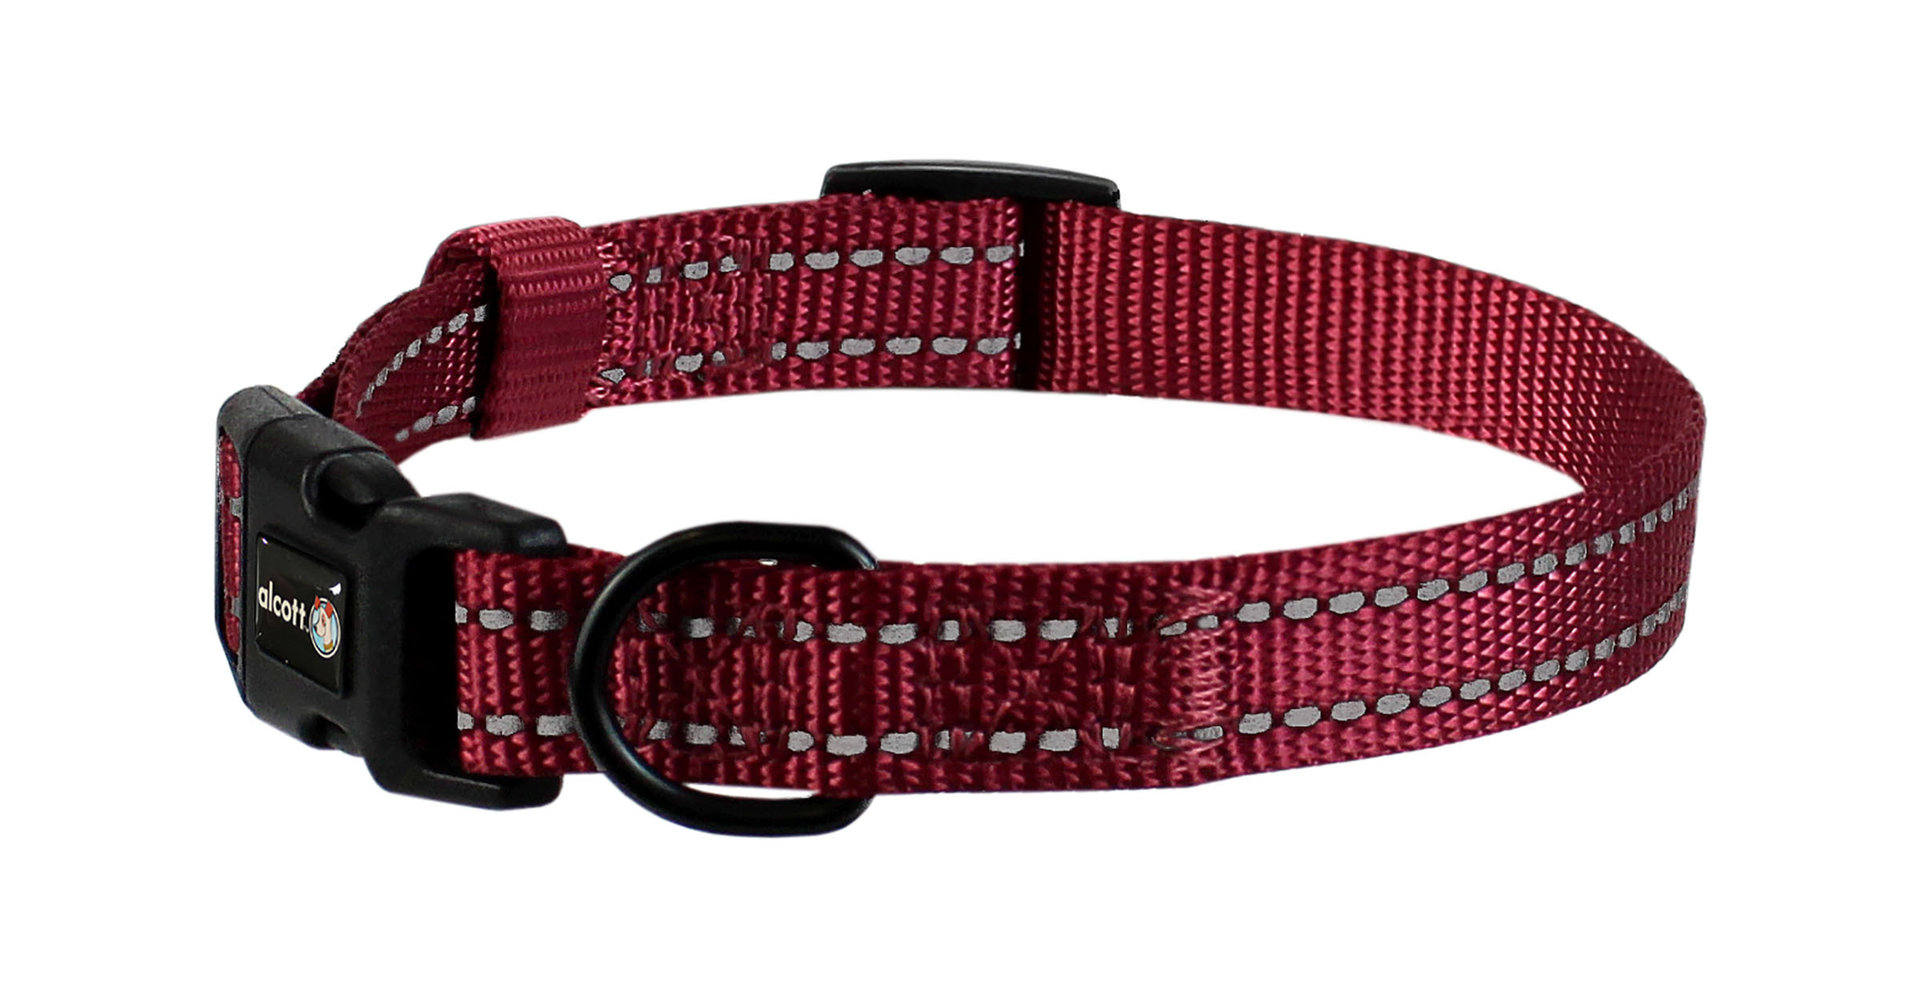 Wanderer Halsband, rot, S - L